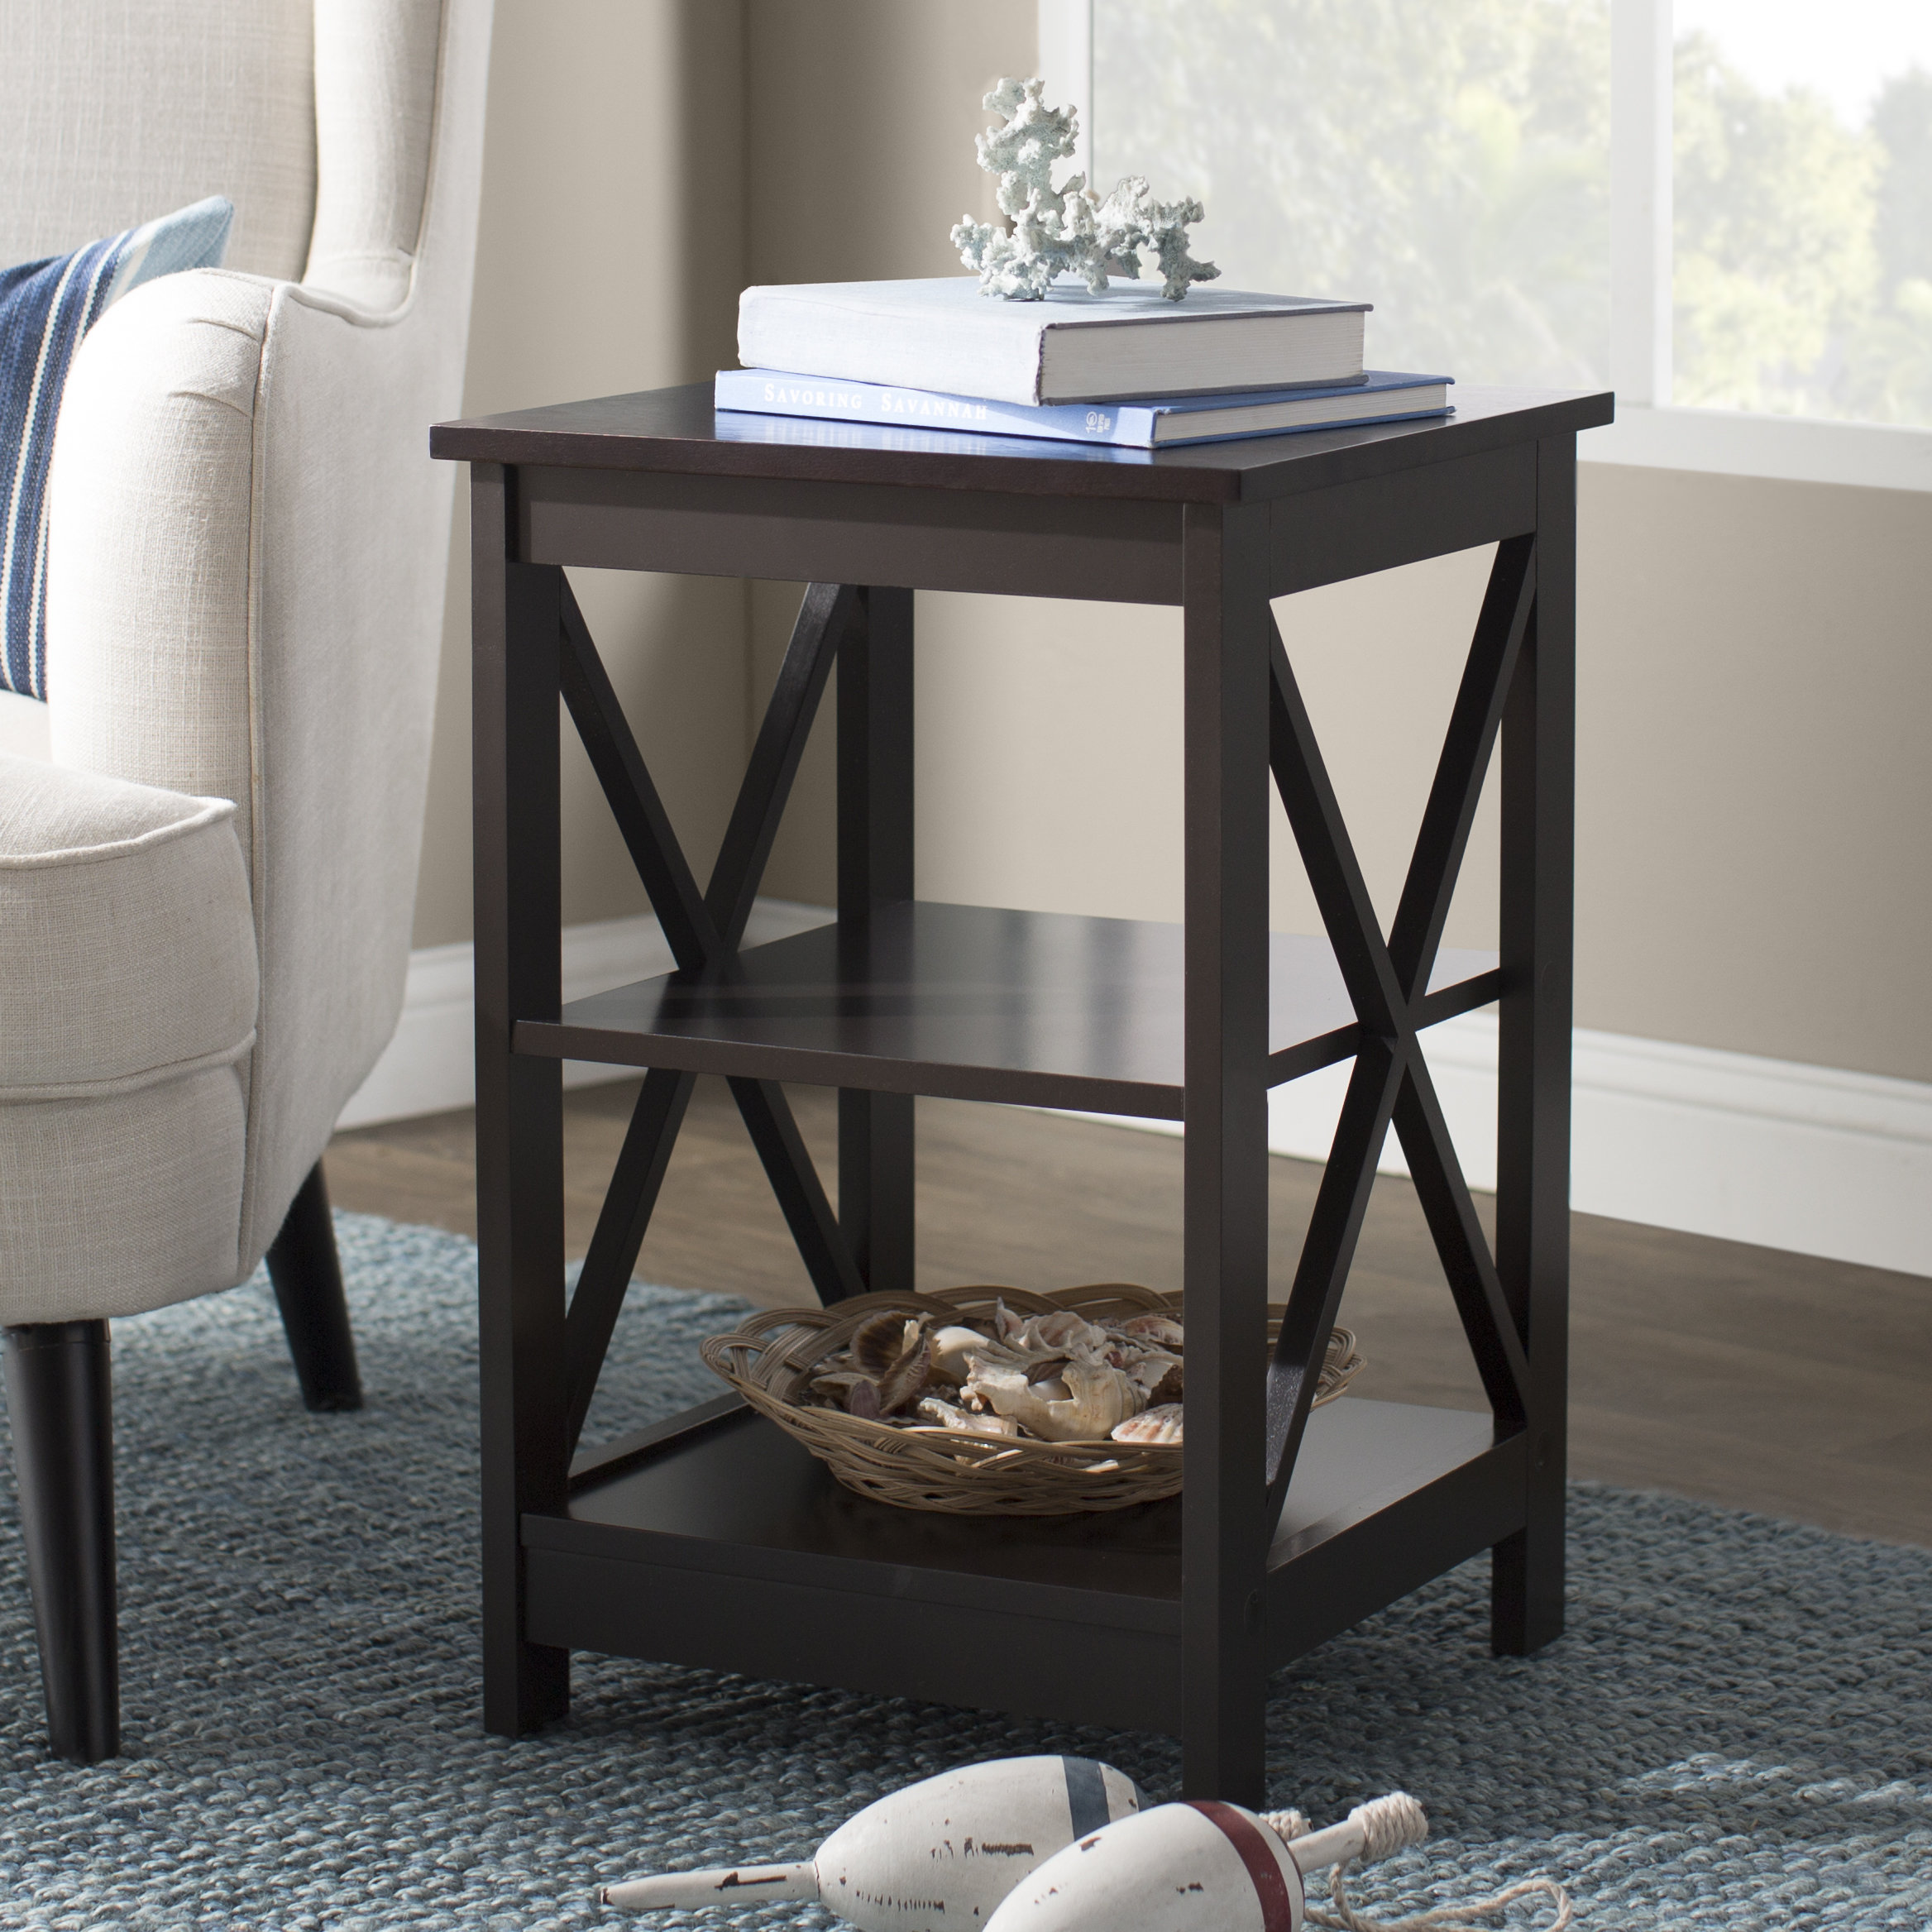 beachcrest home birch lane default name mirrored glass accent table with drawer save entryway rug top navy blue coffee art deco furniture lawn and garden small gas grill unusual